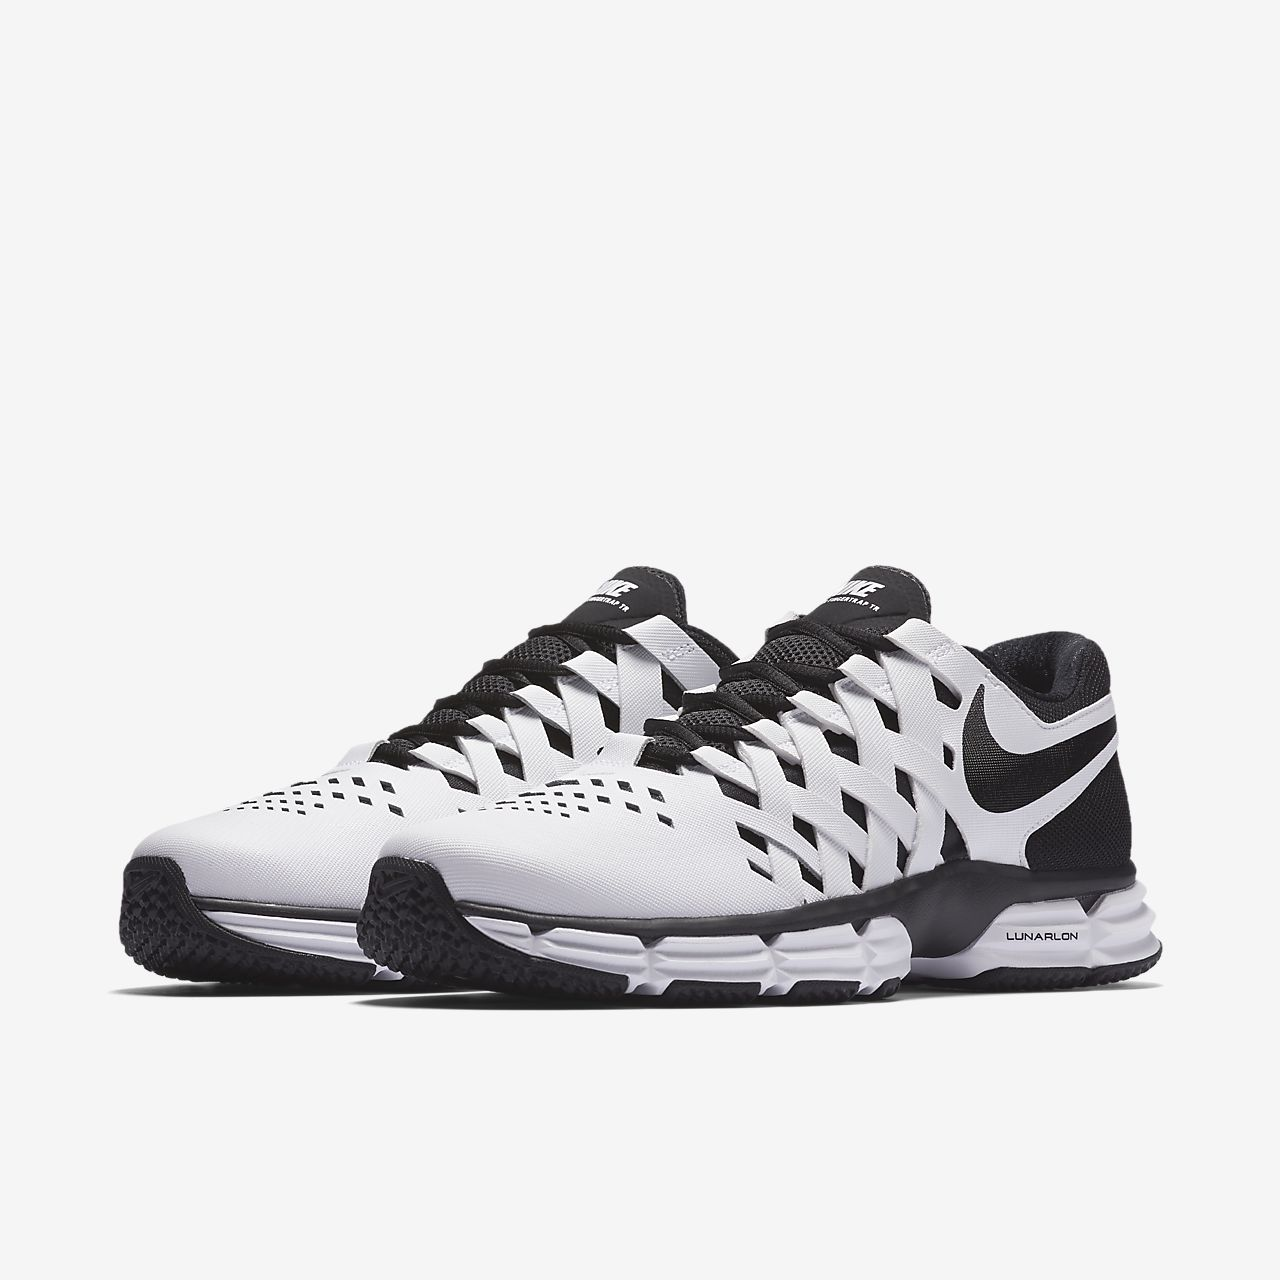 ac2518d708e7 ... Nike Lunar Fingertrap (Extra Wide) TR Men s Training Shoe